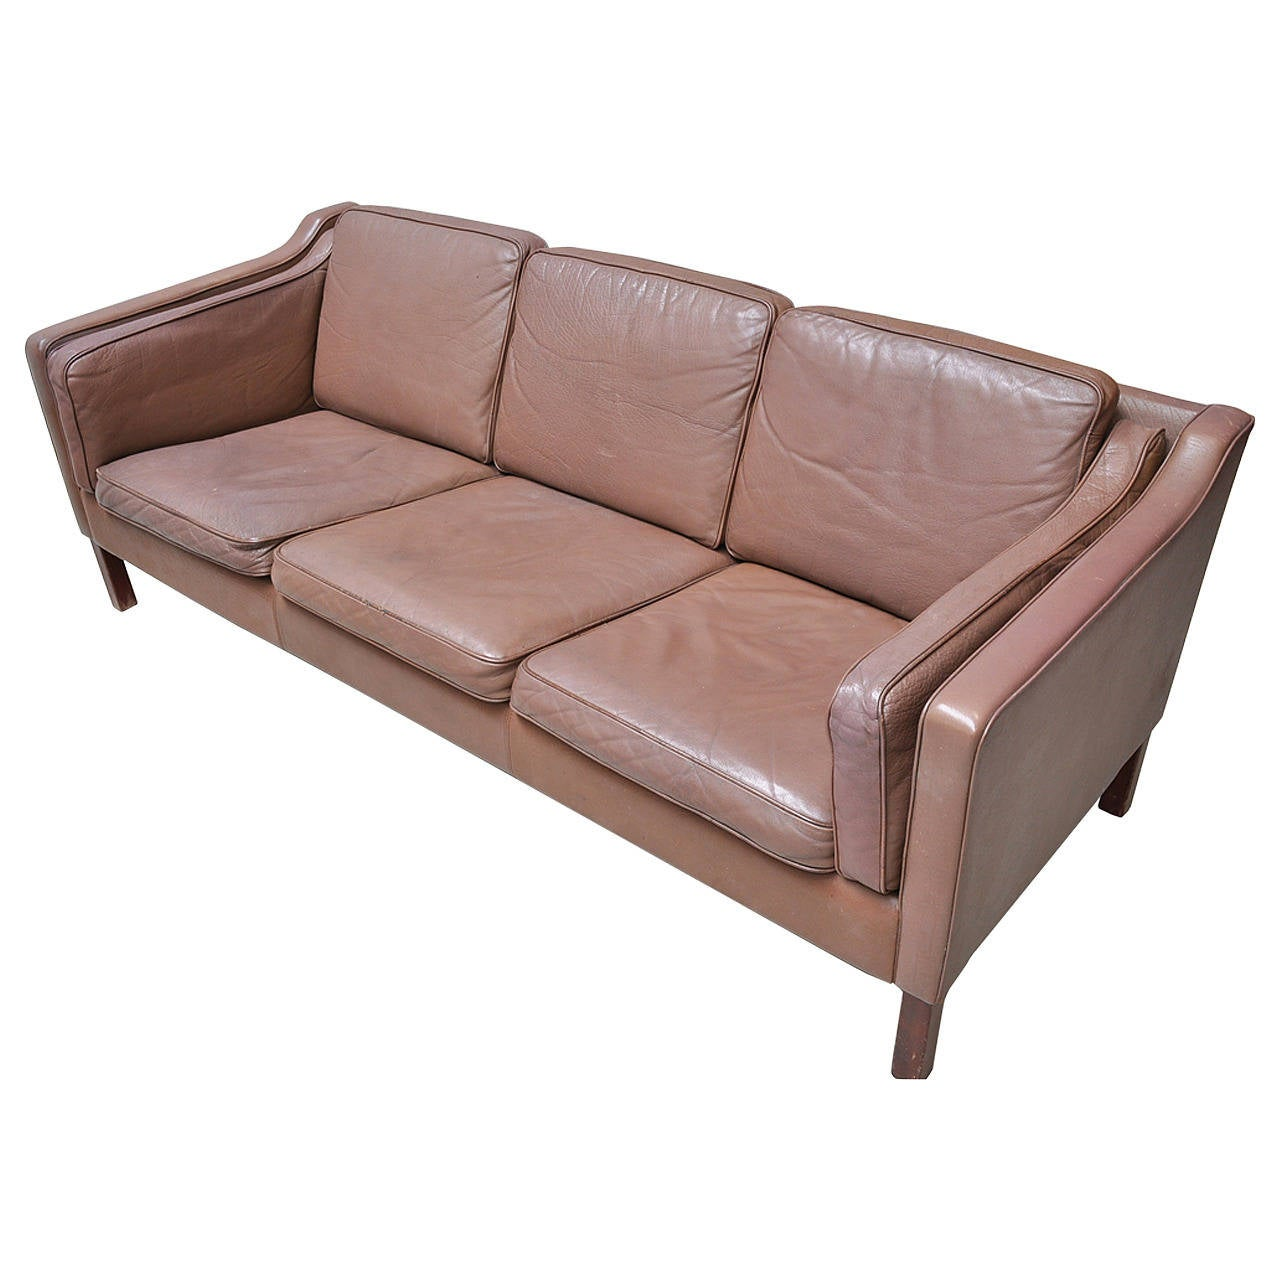 danish 1960s sofa upholstered in chocolate colored leather at 1stdibs. Black Bedroom Furniture Sets. Home Design Ideas